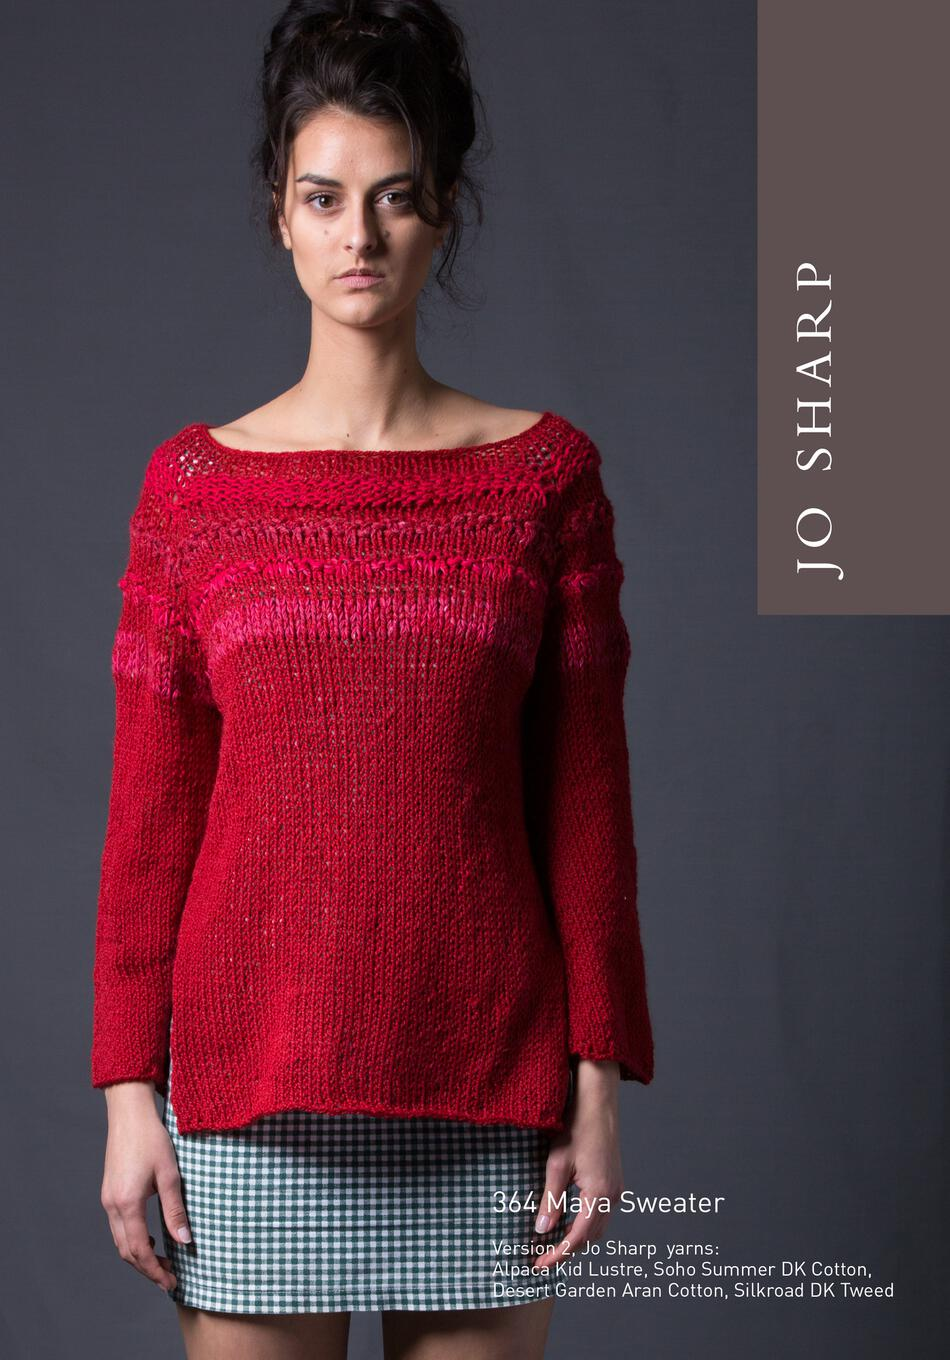 Jo Sharp Maya Sweater - Pattern, Knitting Pattern - Halcyon Yarn